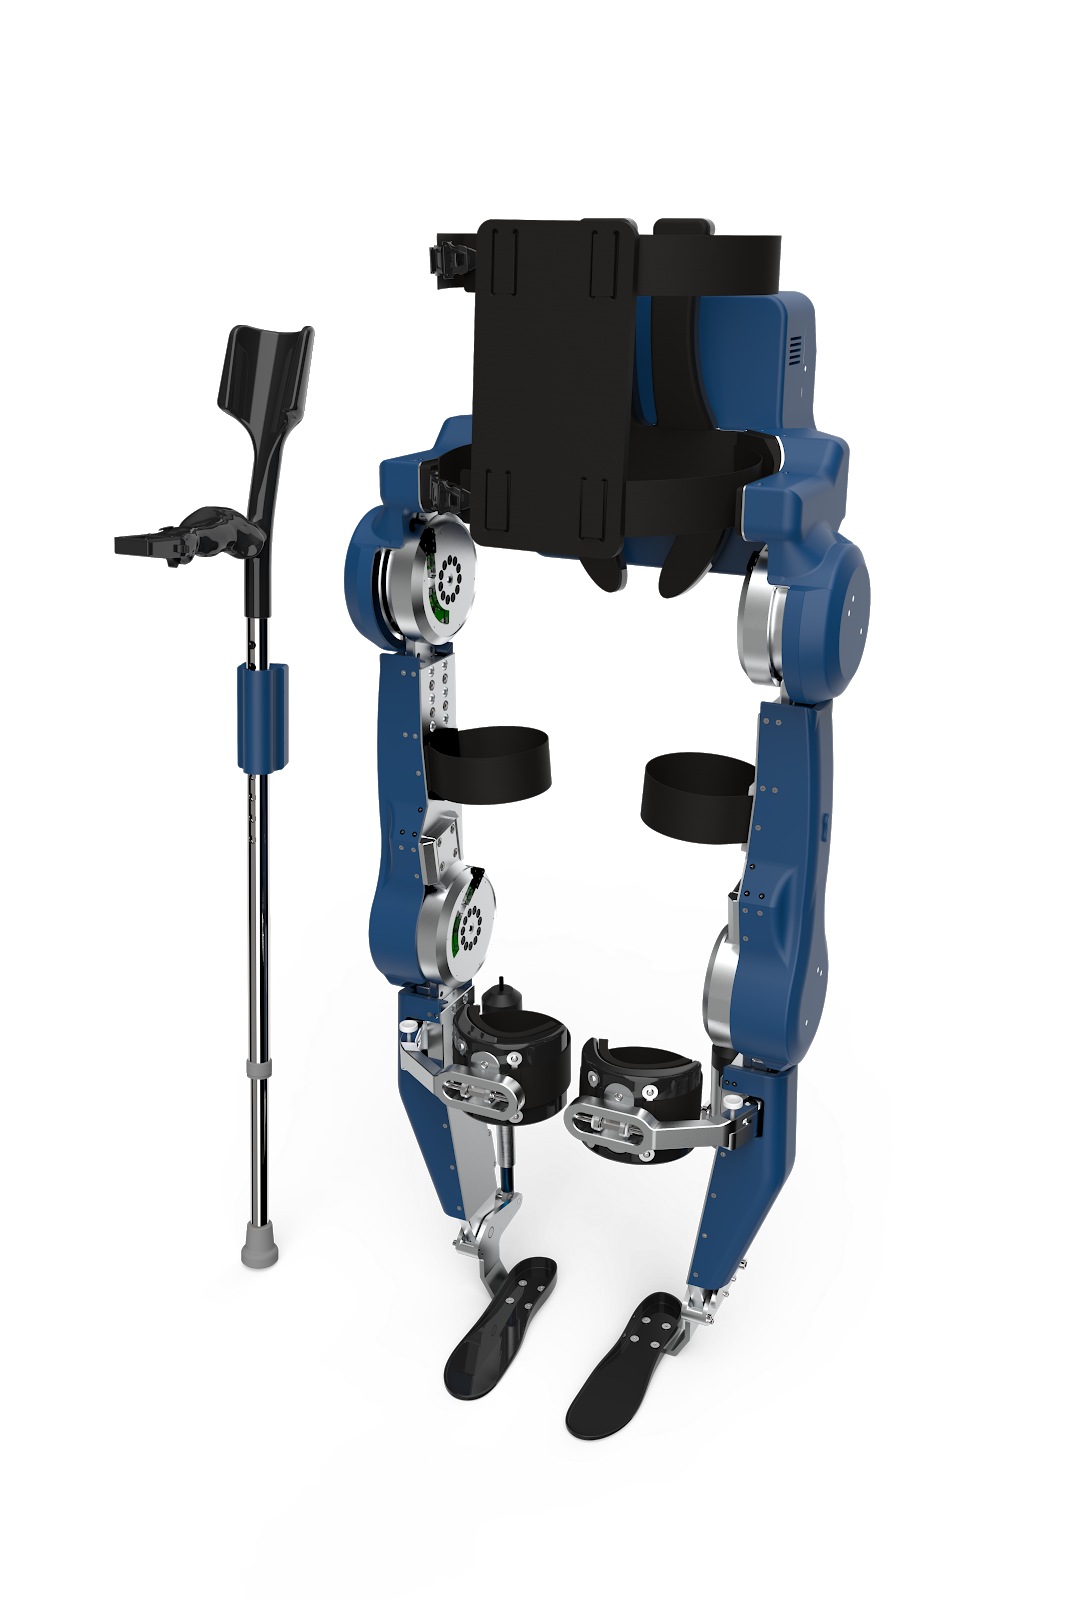 Exoskeleton with 30 PCBs